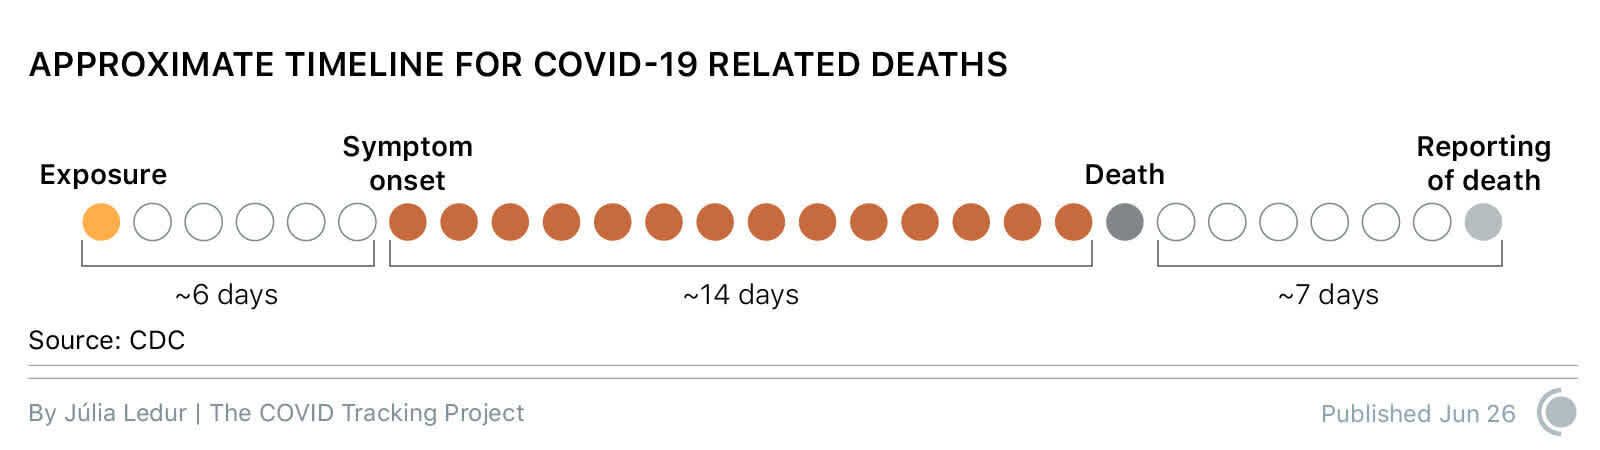 Approximate timeline for COVID-19 related deaths